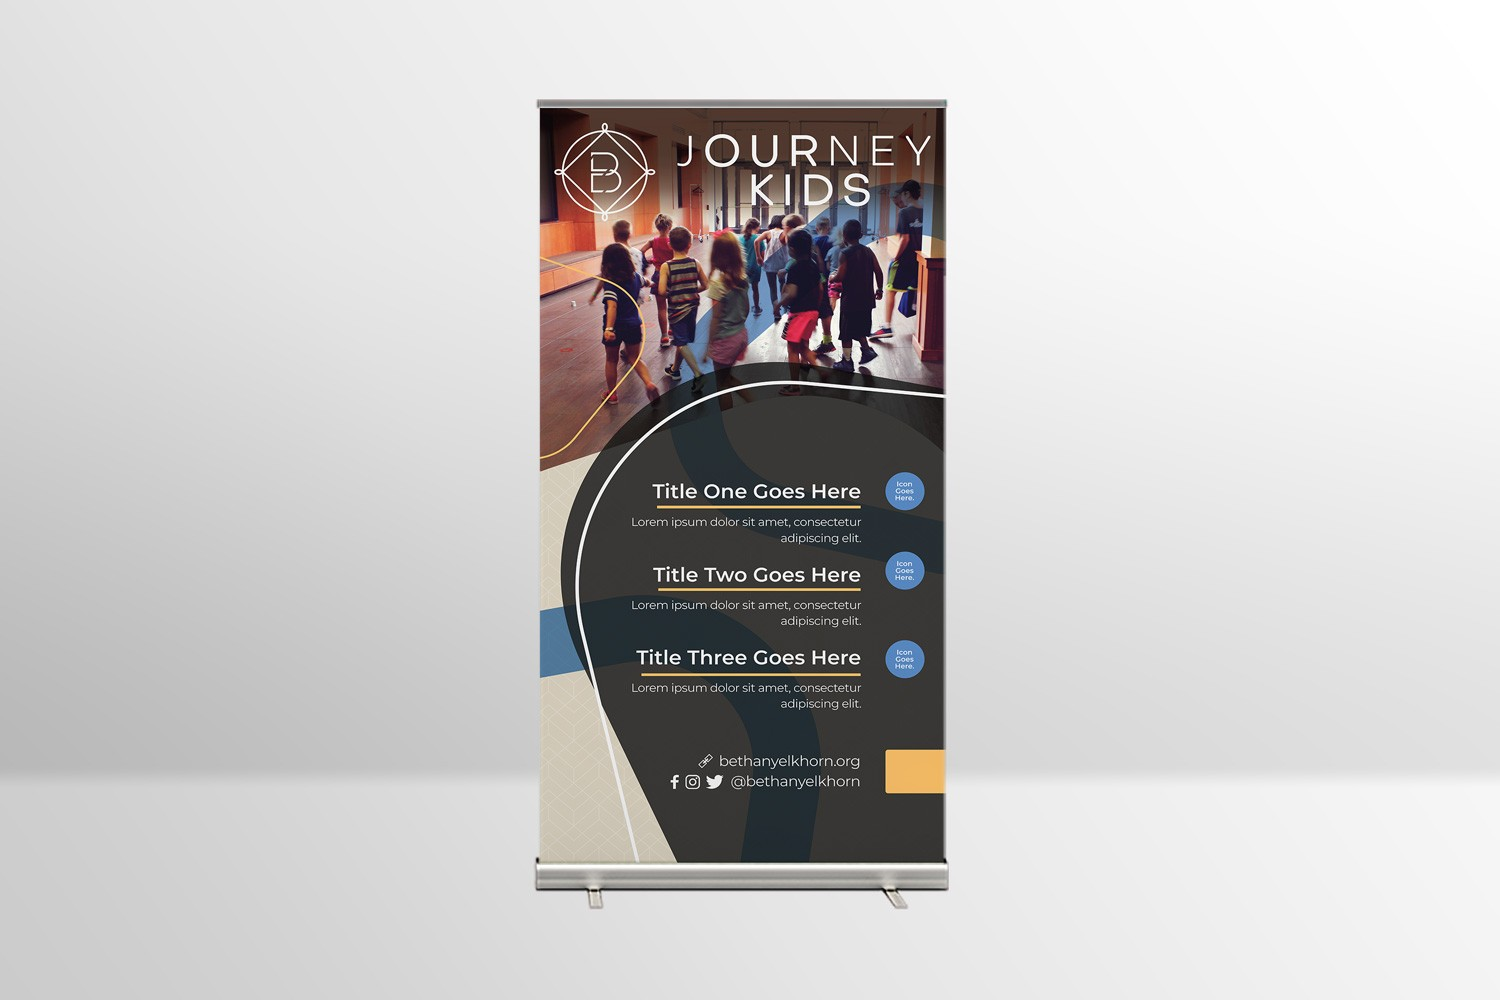 church retractable banner with ministry logo design ideas